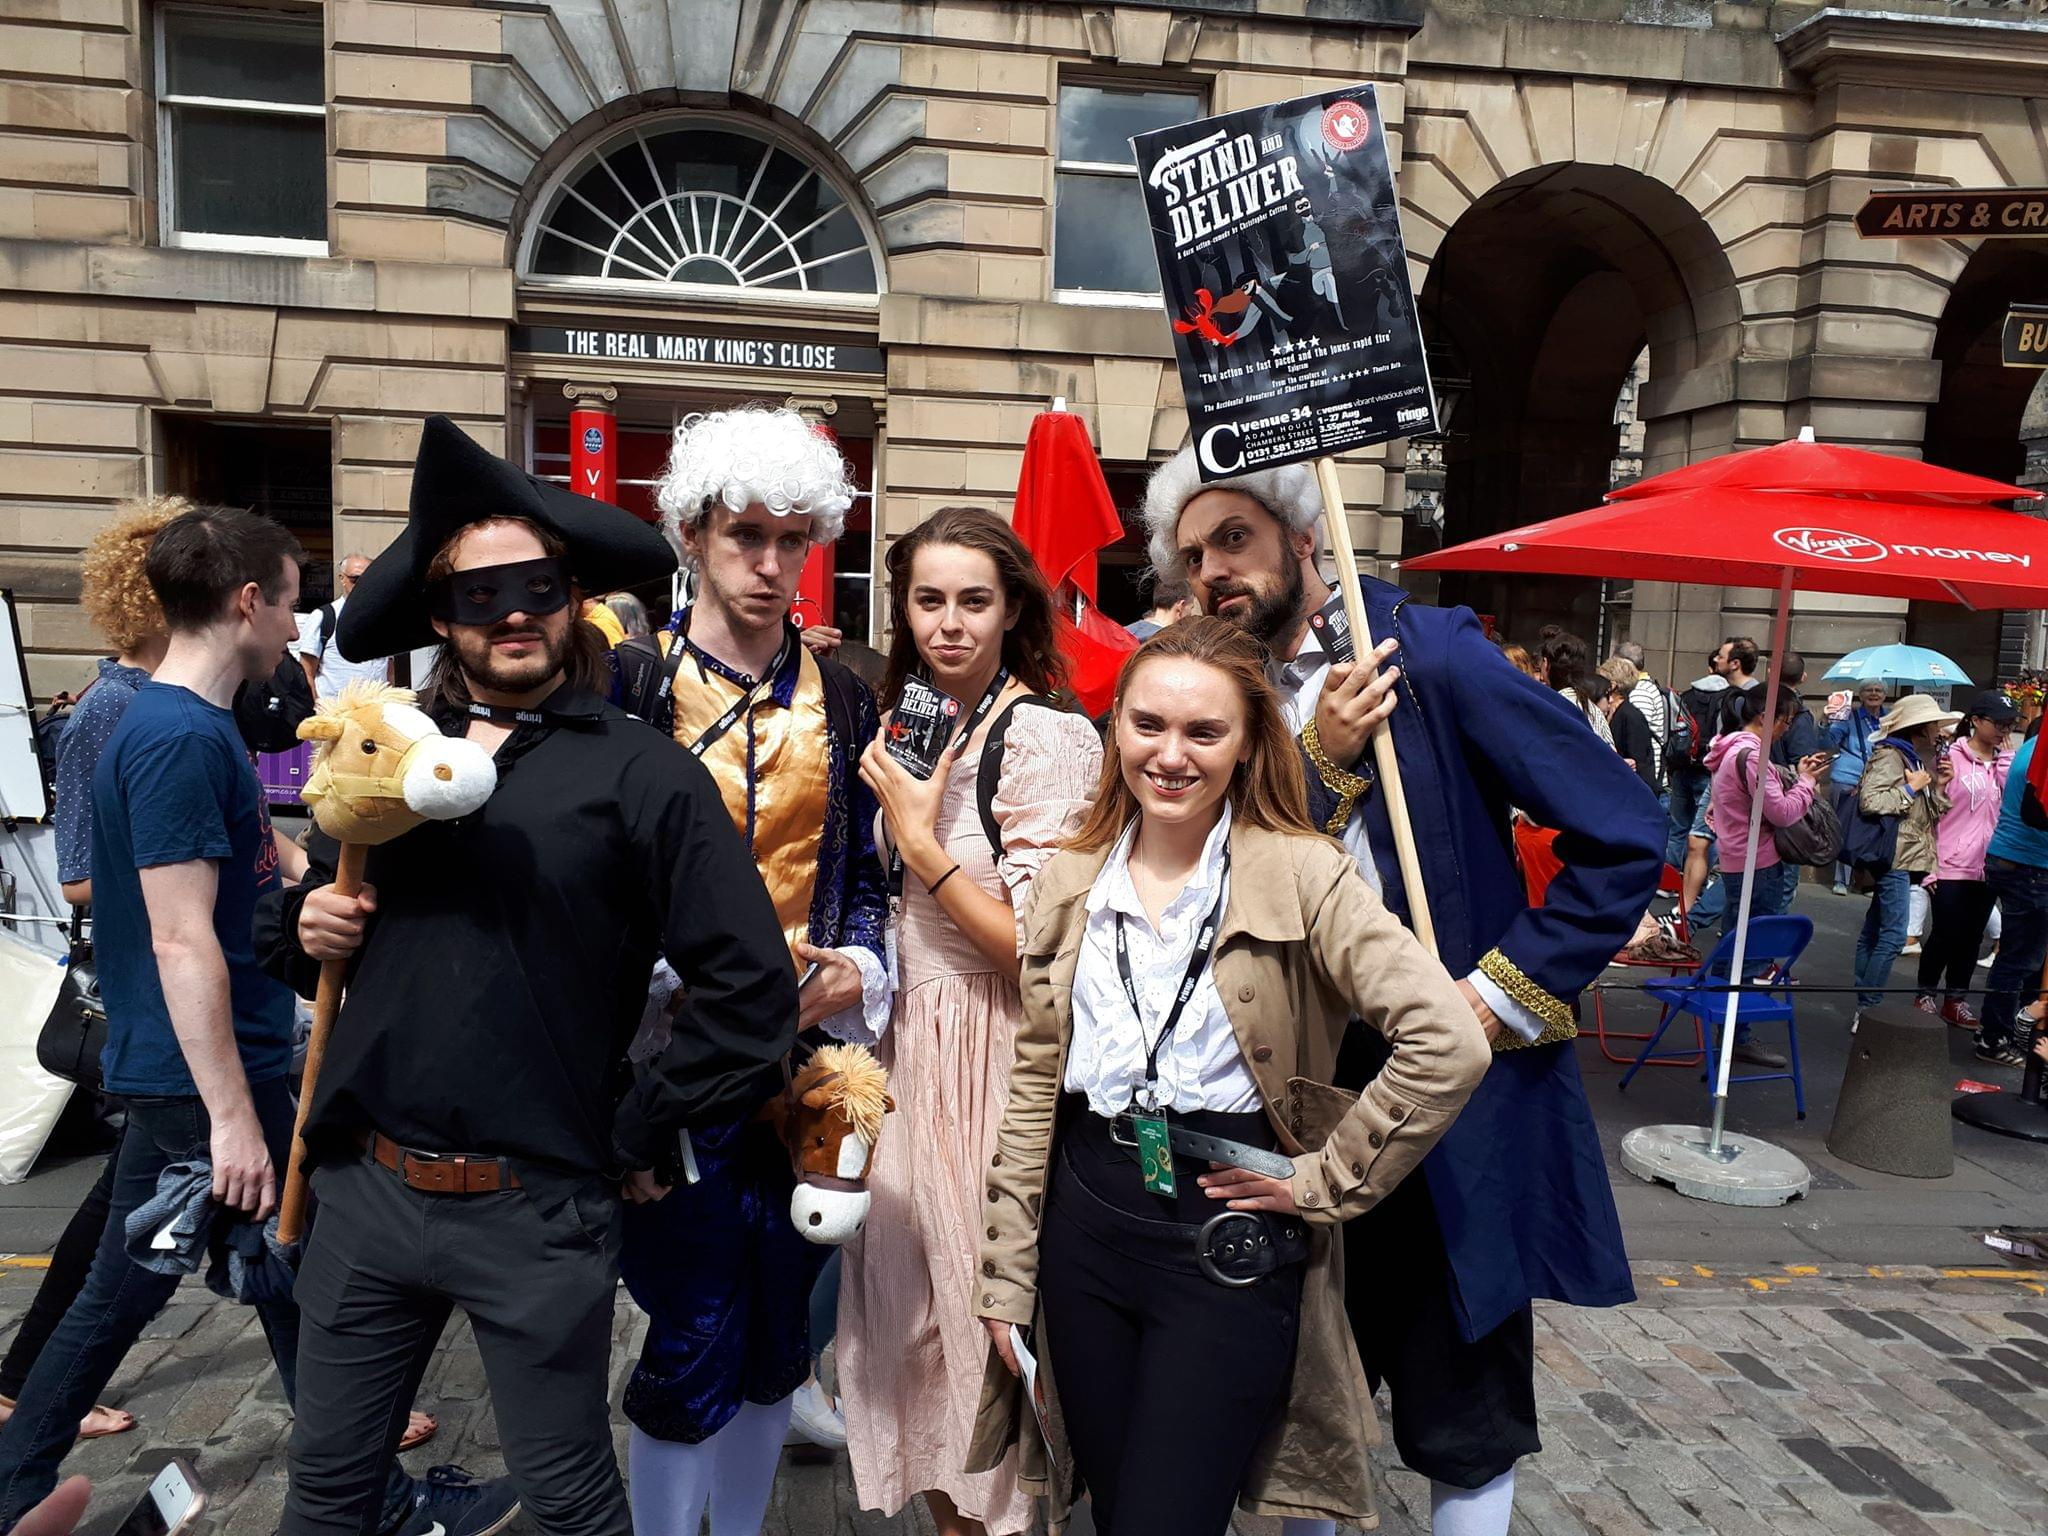 The cast of Stand and Deliver, flyering at Edinburgh Fringe Festival